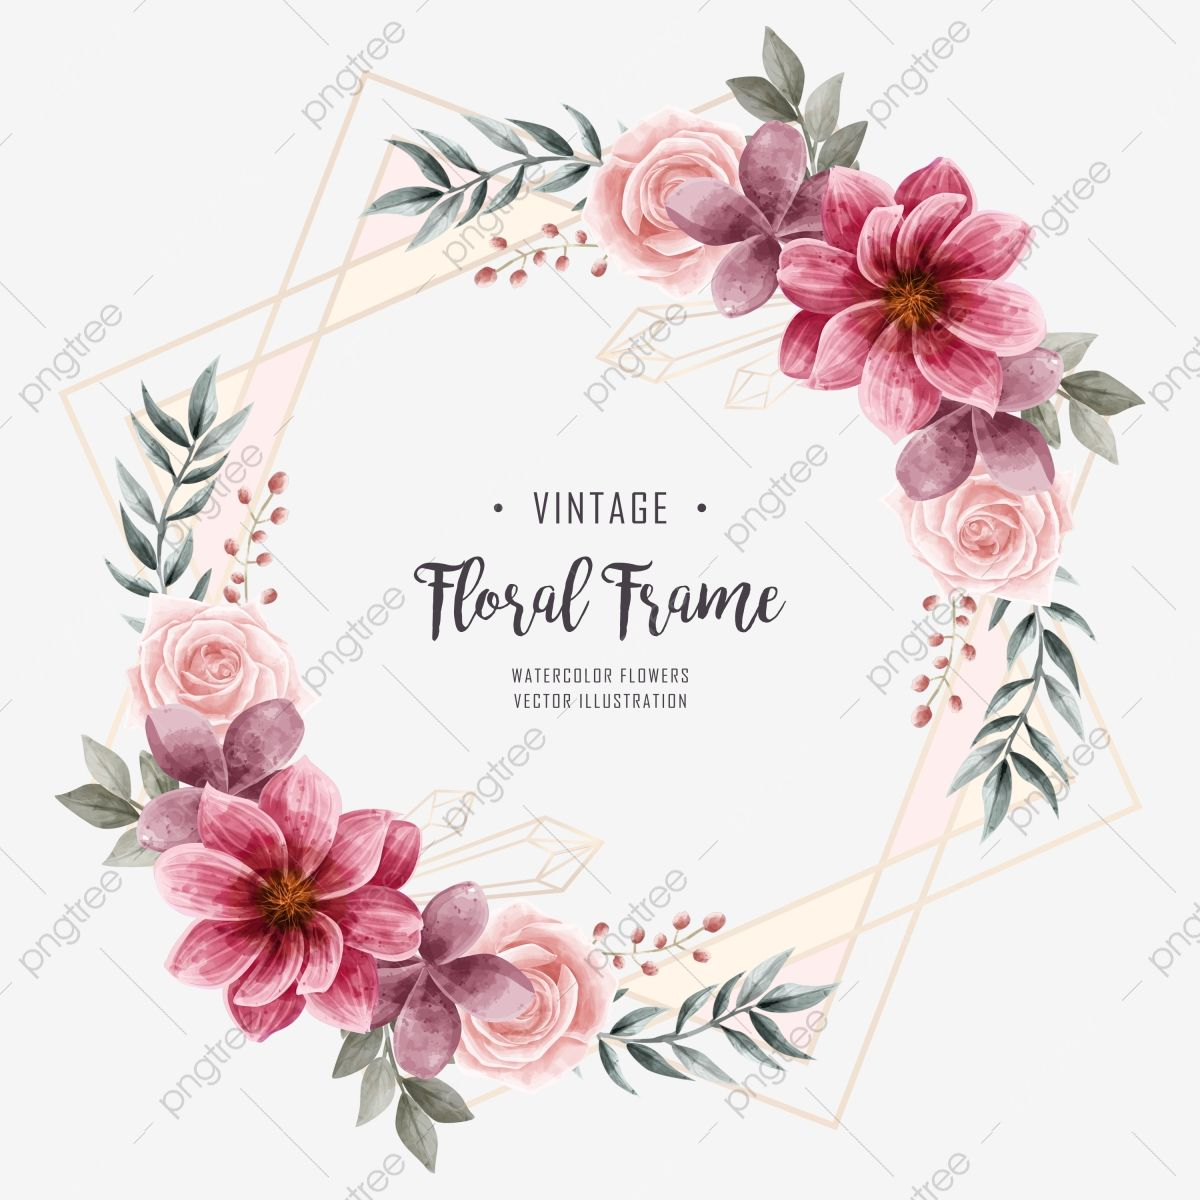 Watercolor Floral Flower Frame Wedding Invitation Watercolor Clipart Background Pattern Png Transparent Clipart Image And Psd File For Free Download Flower Frame Floral Watercolor Watercolor Flower Illustration